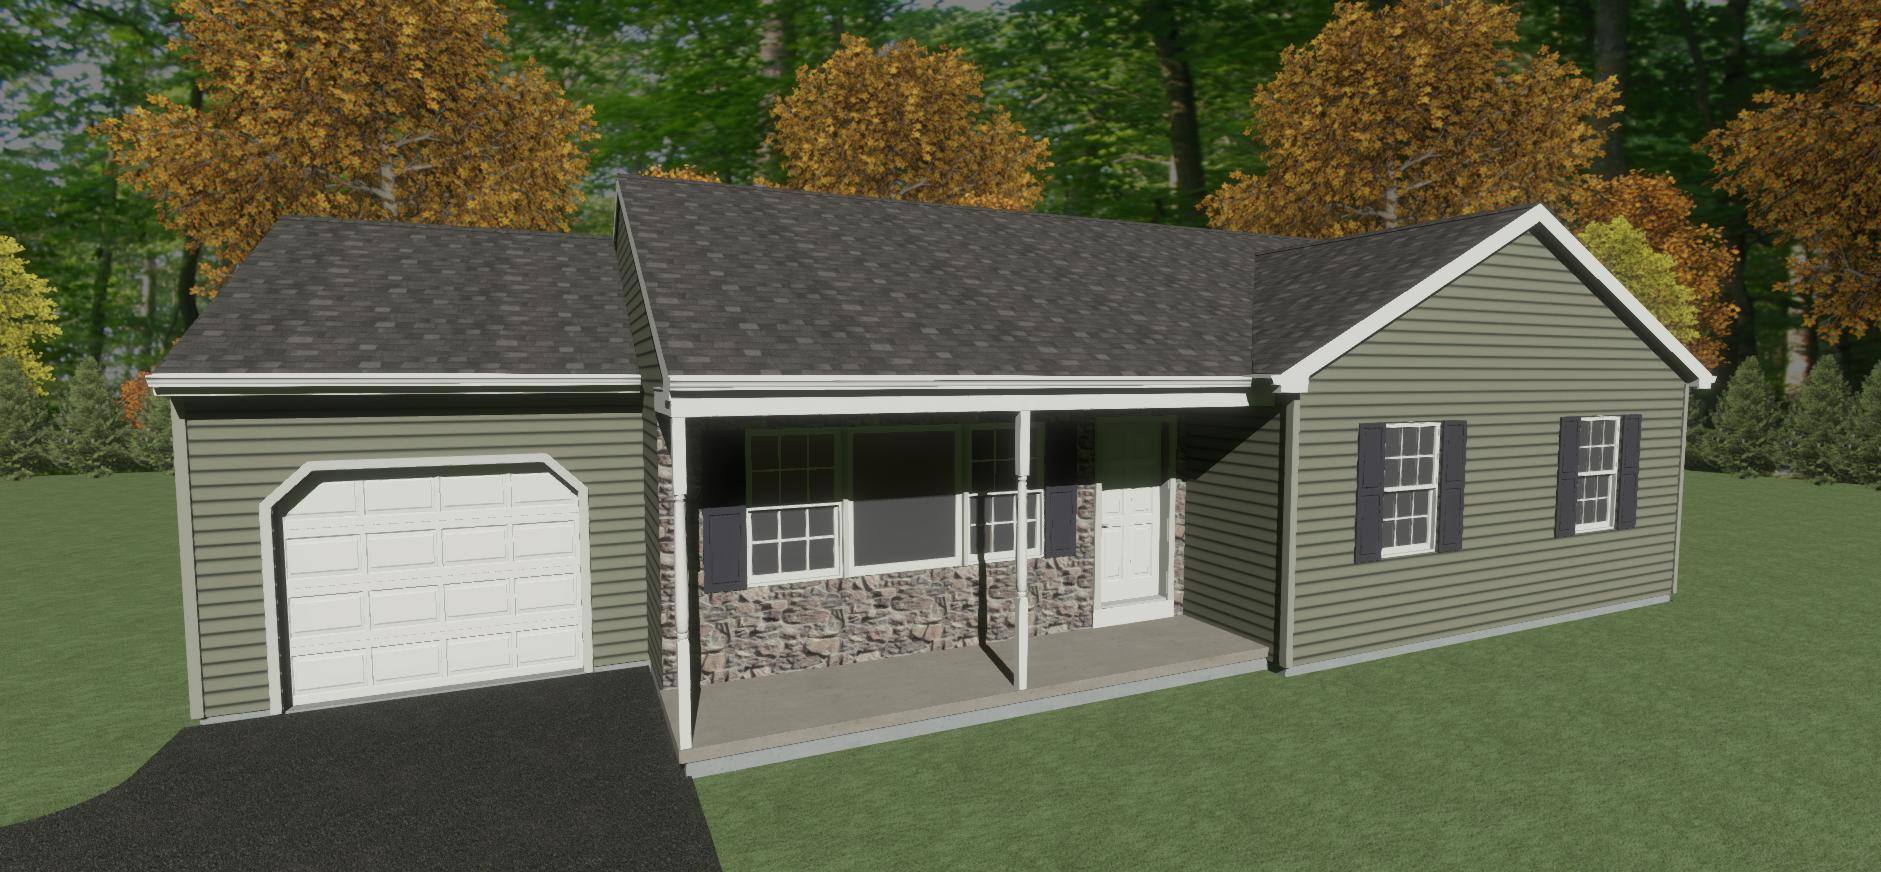 Rancher Yes - 3 Rooms - 1 Bathrooms --  1-car garage (optional) - 1264